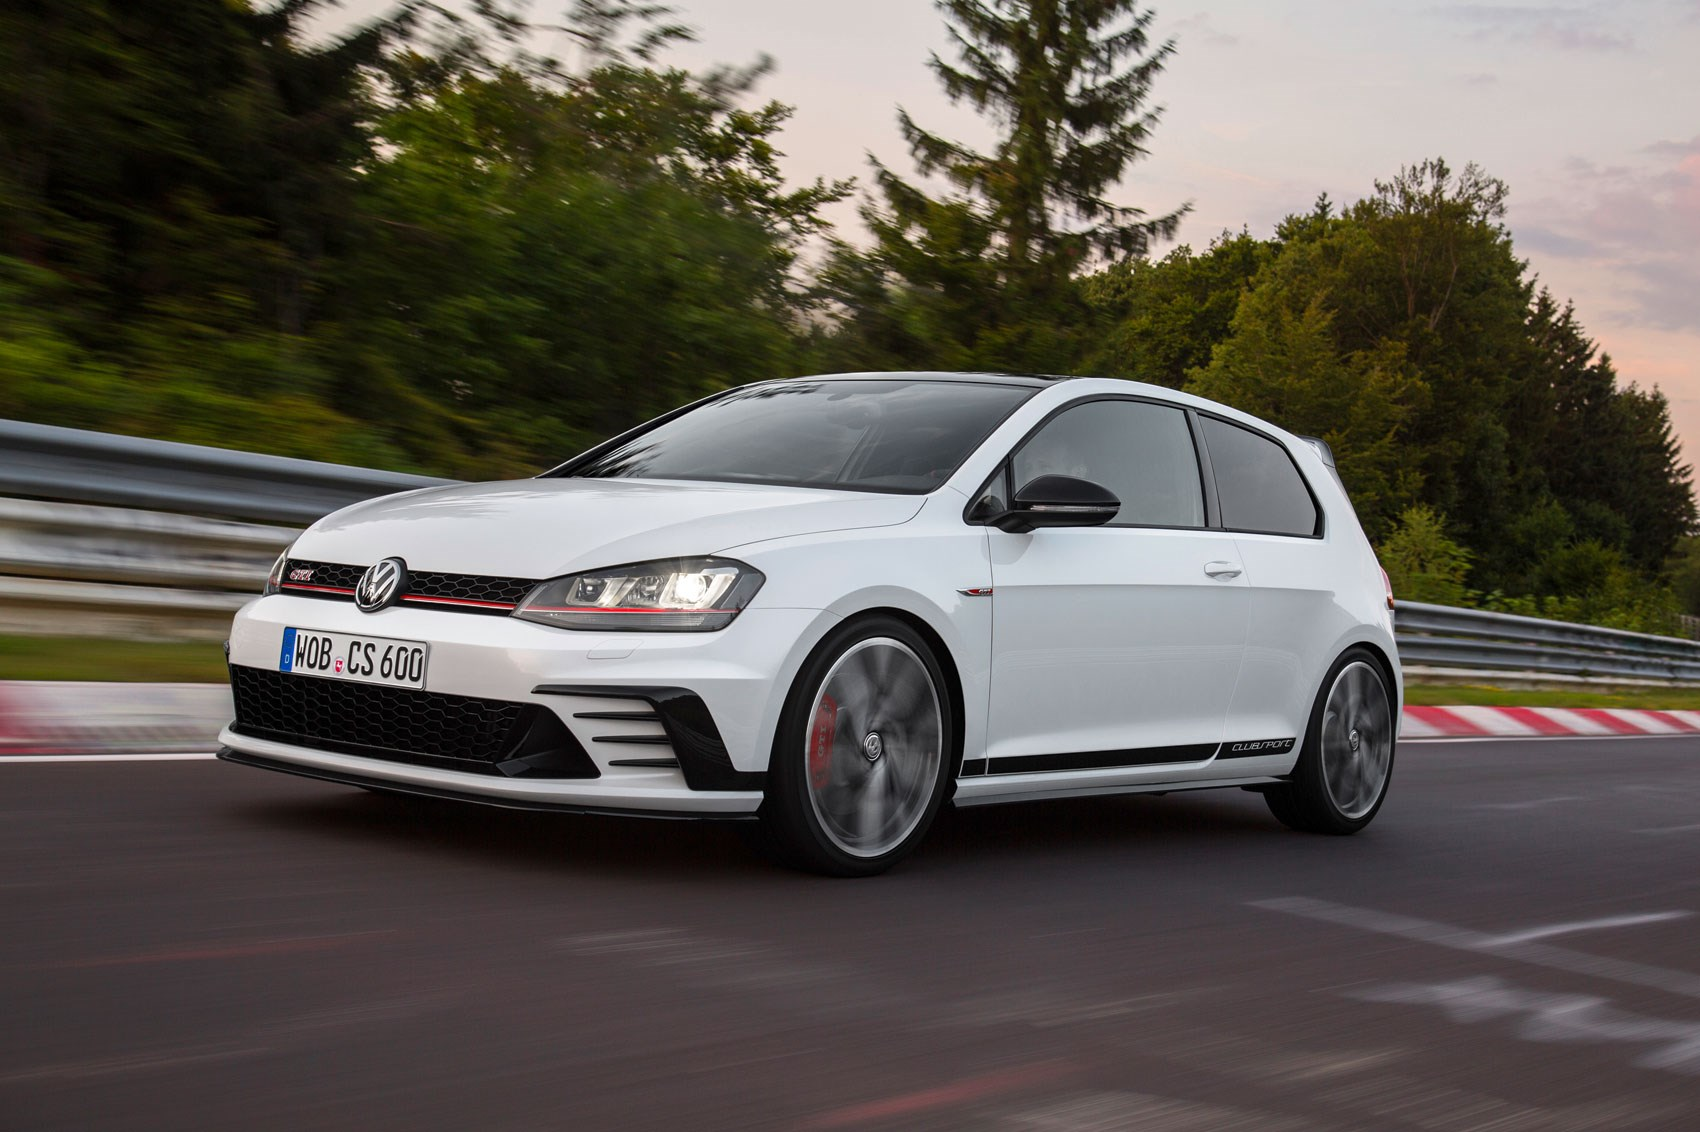 vw golf gti clubsport 2016 the most powerful gti yet car magazine. Black Bedroom Furniture Sets. Home Design Ideas